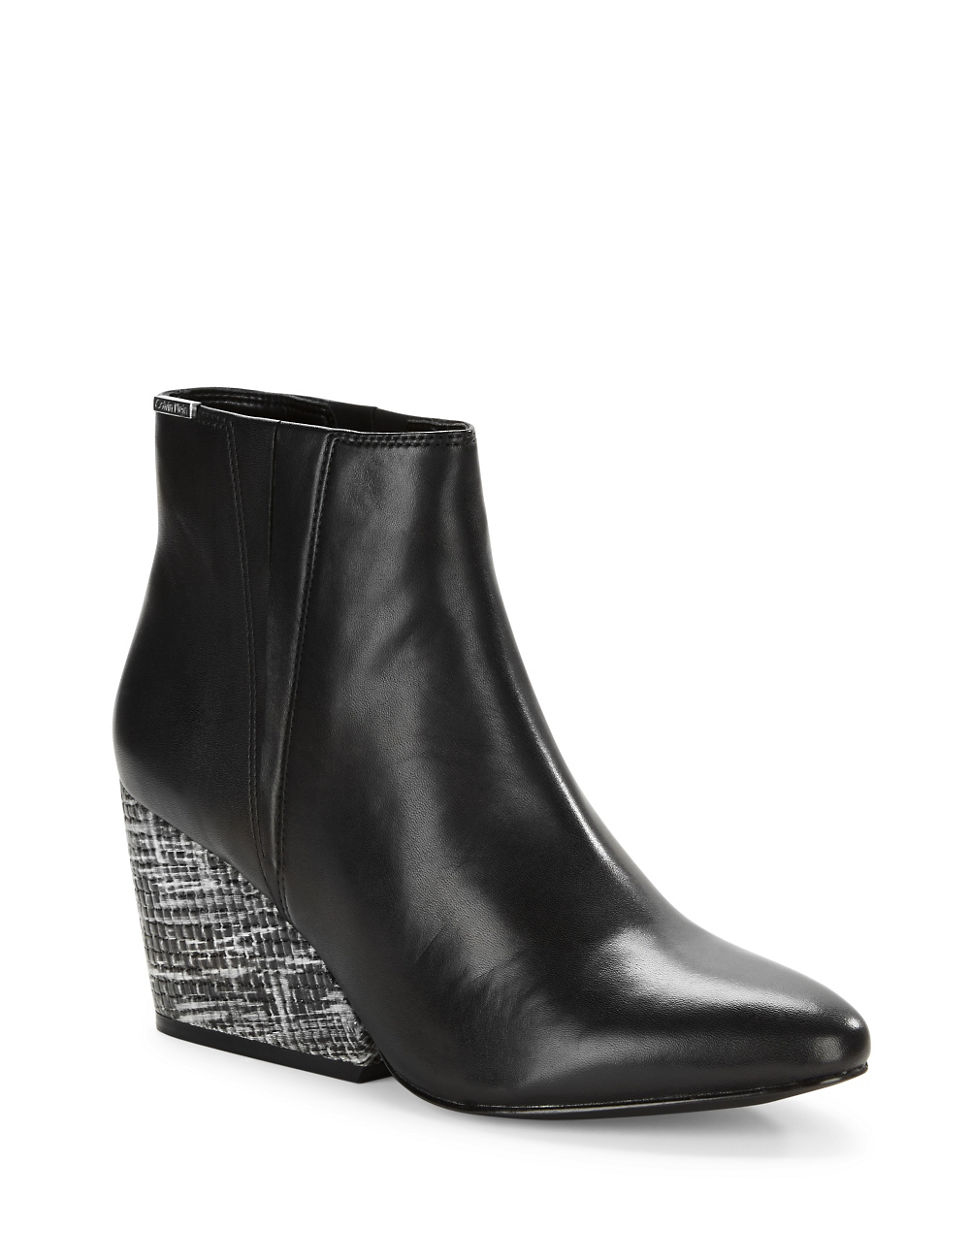 Céline Grey Leather Boots upACcP3